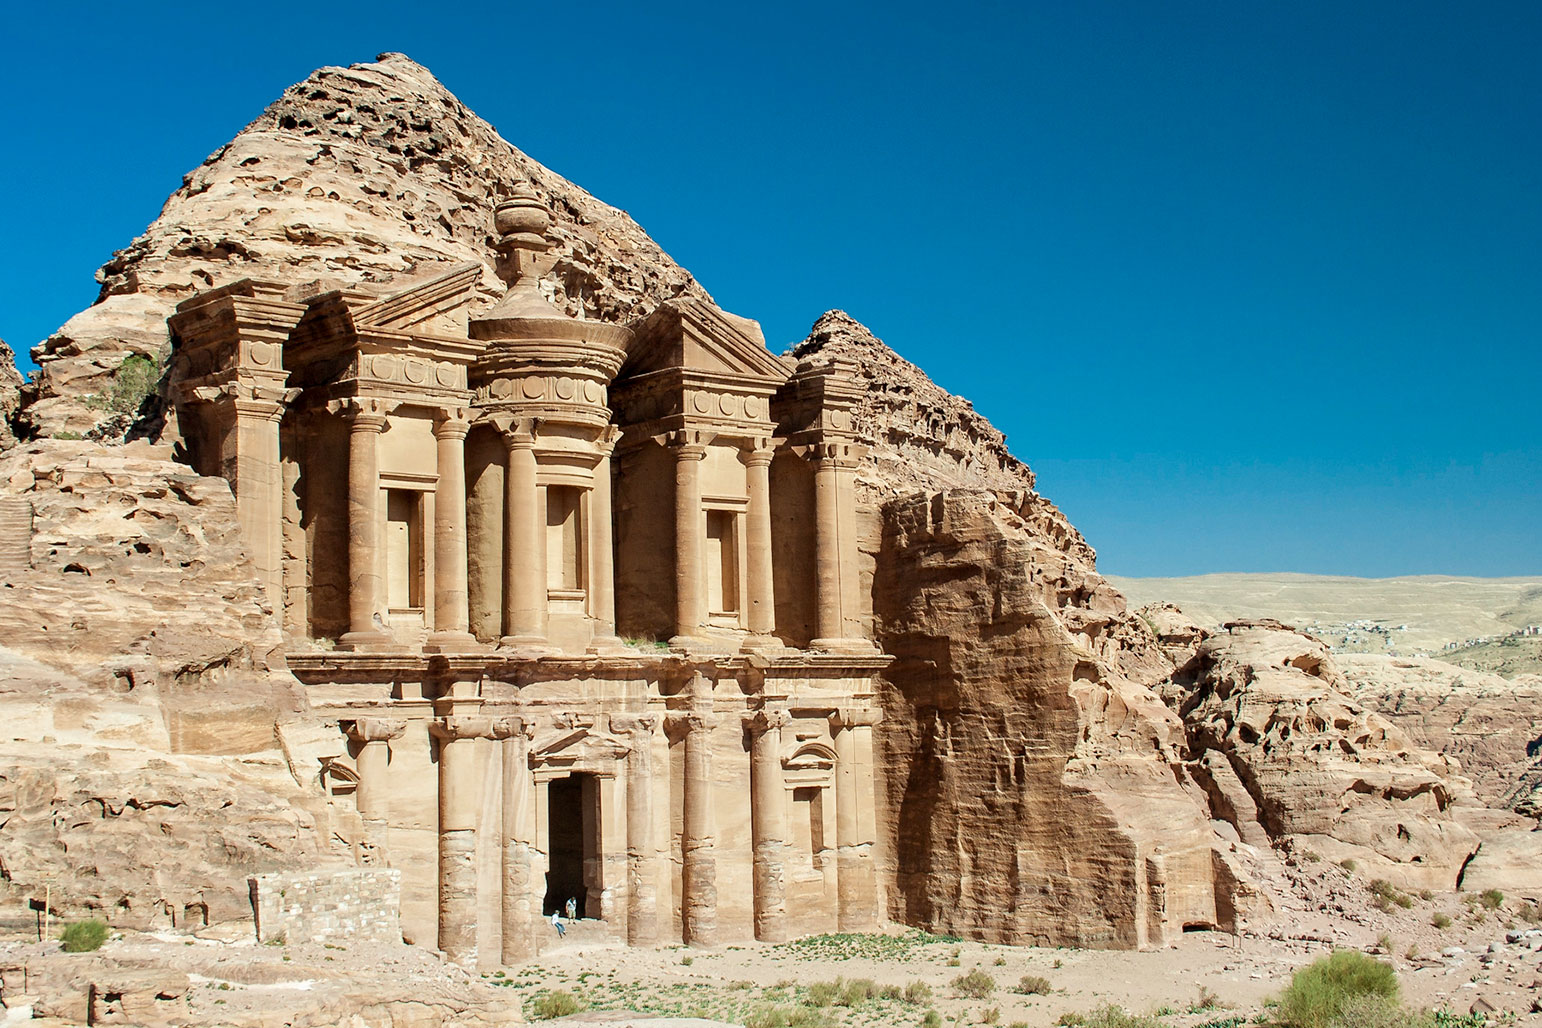 A Tourist Guide for Visiting Petra